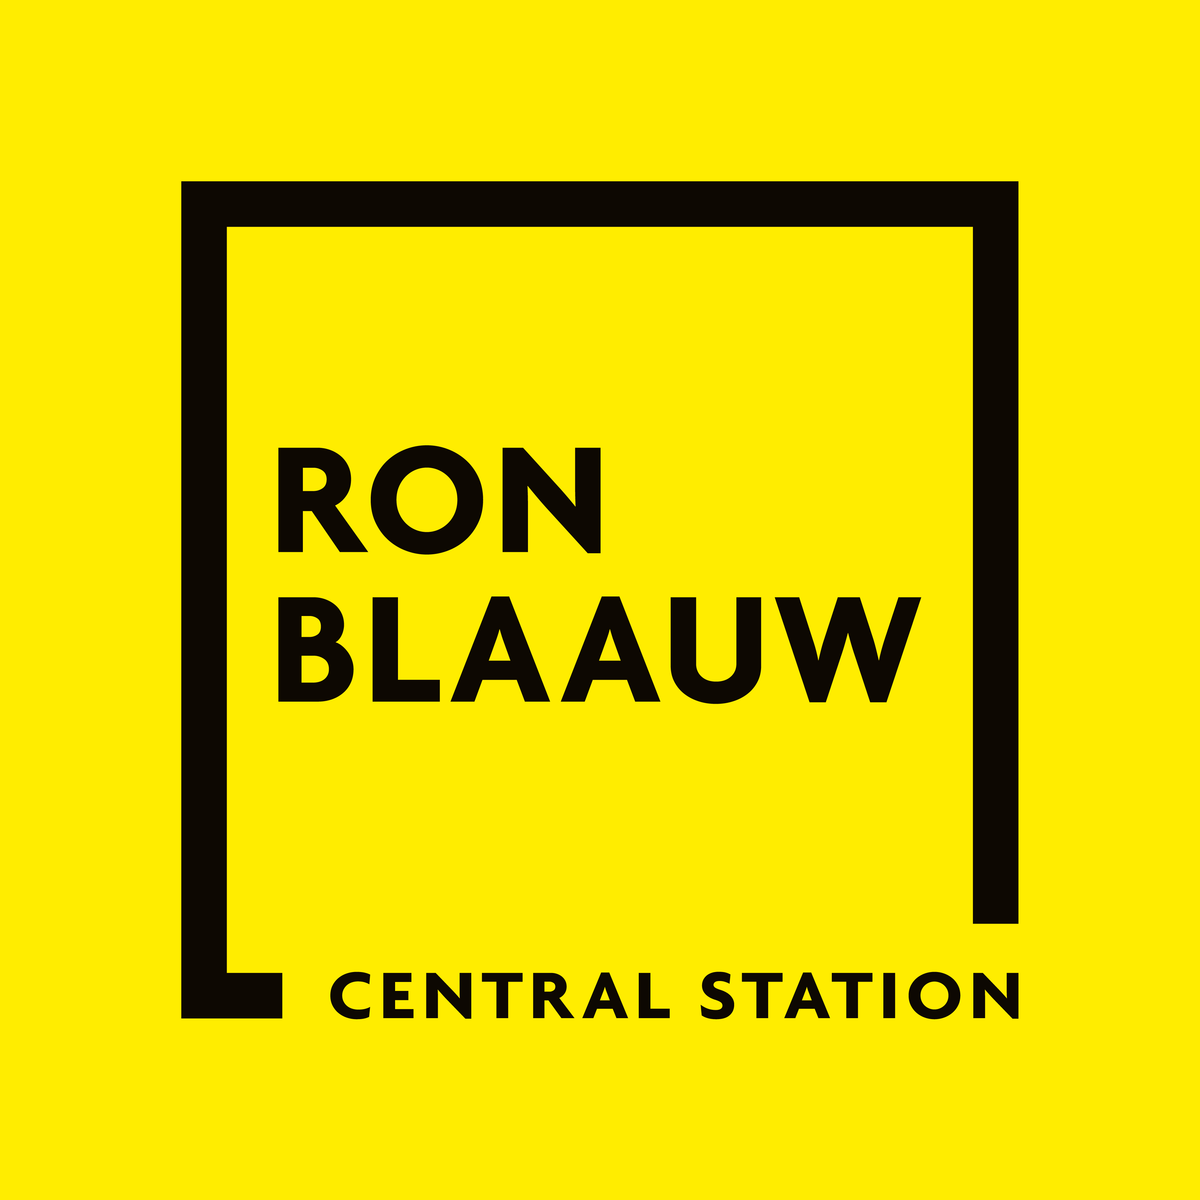 Ron Blaauw Central Station & Catering